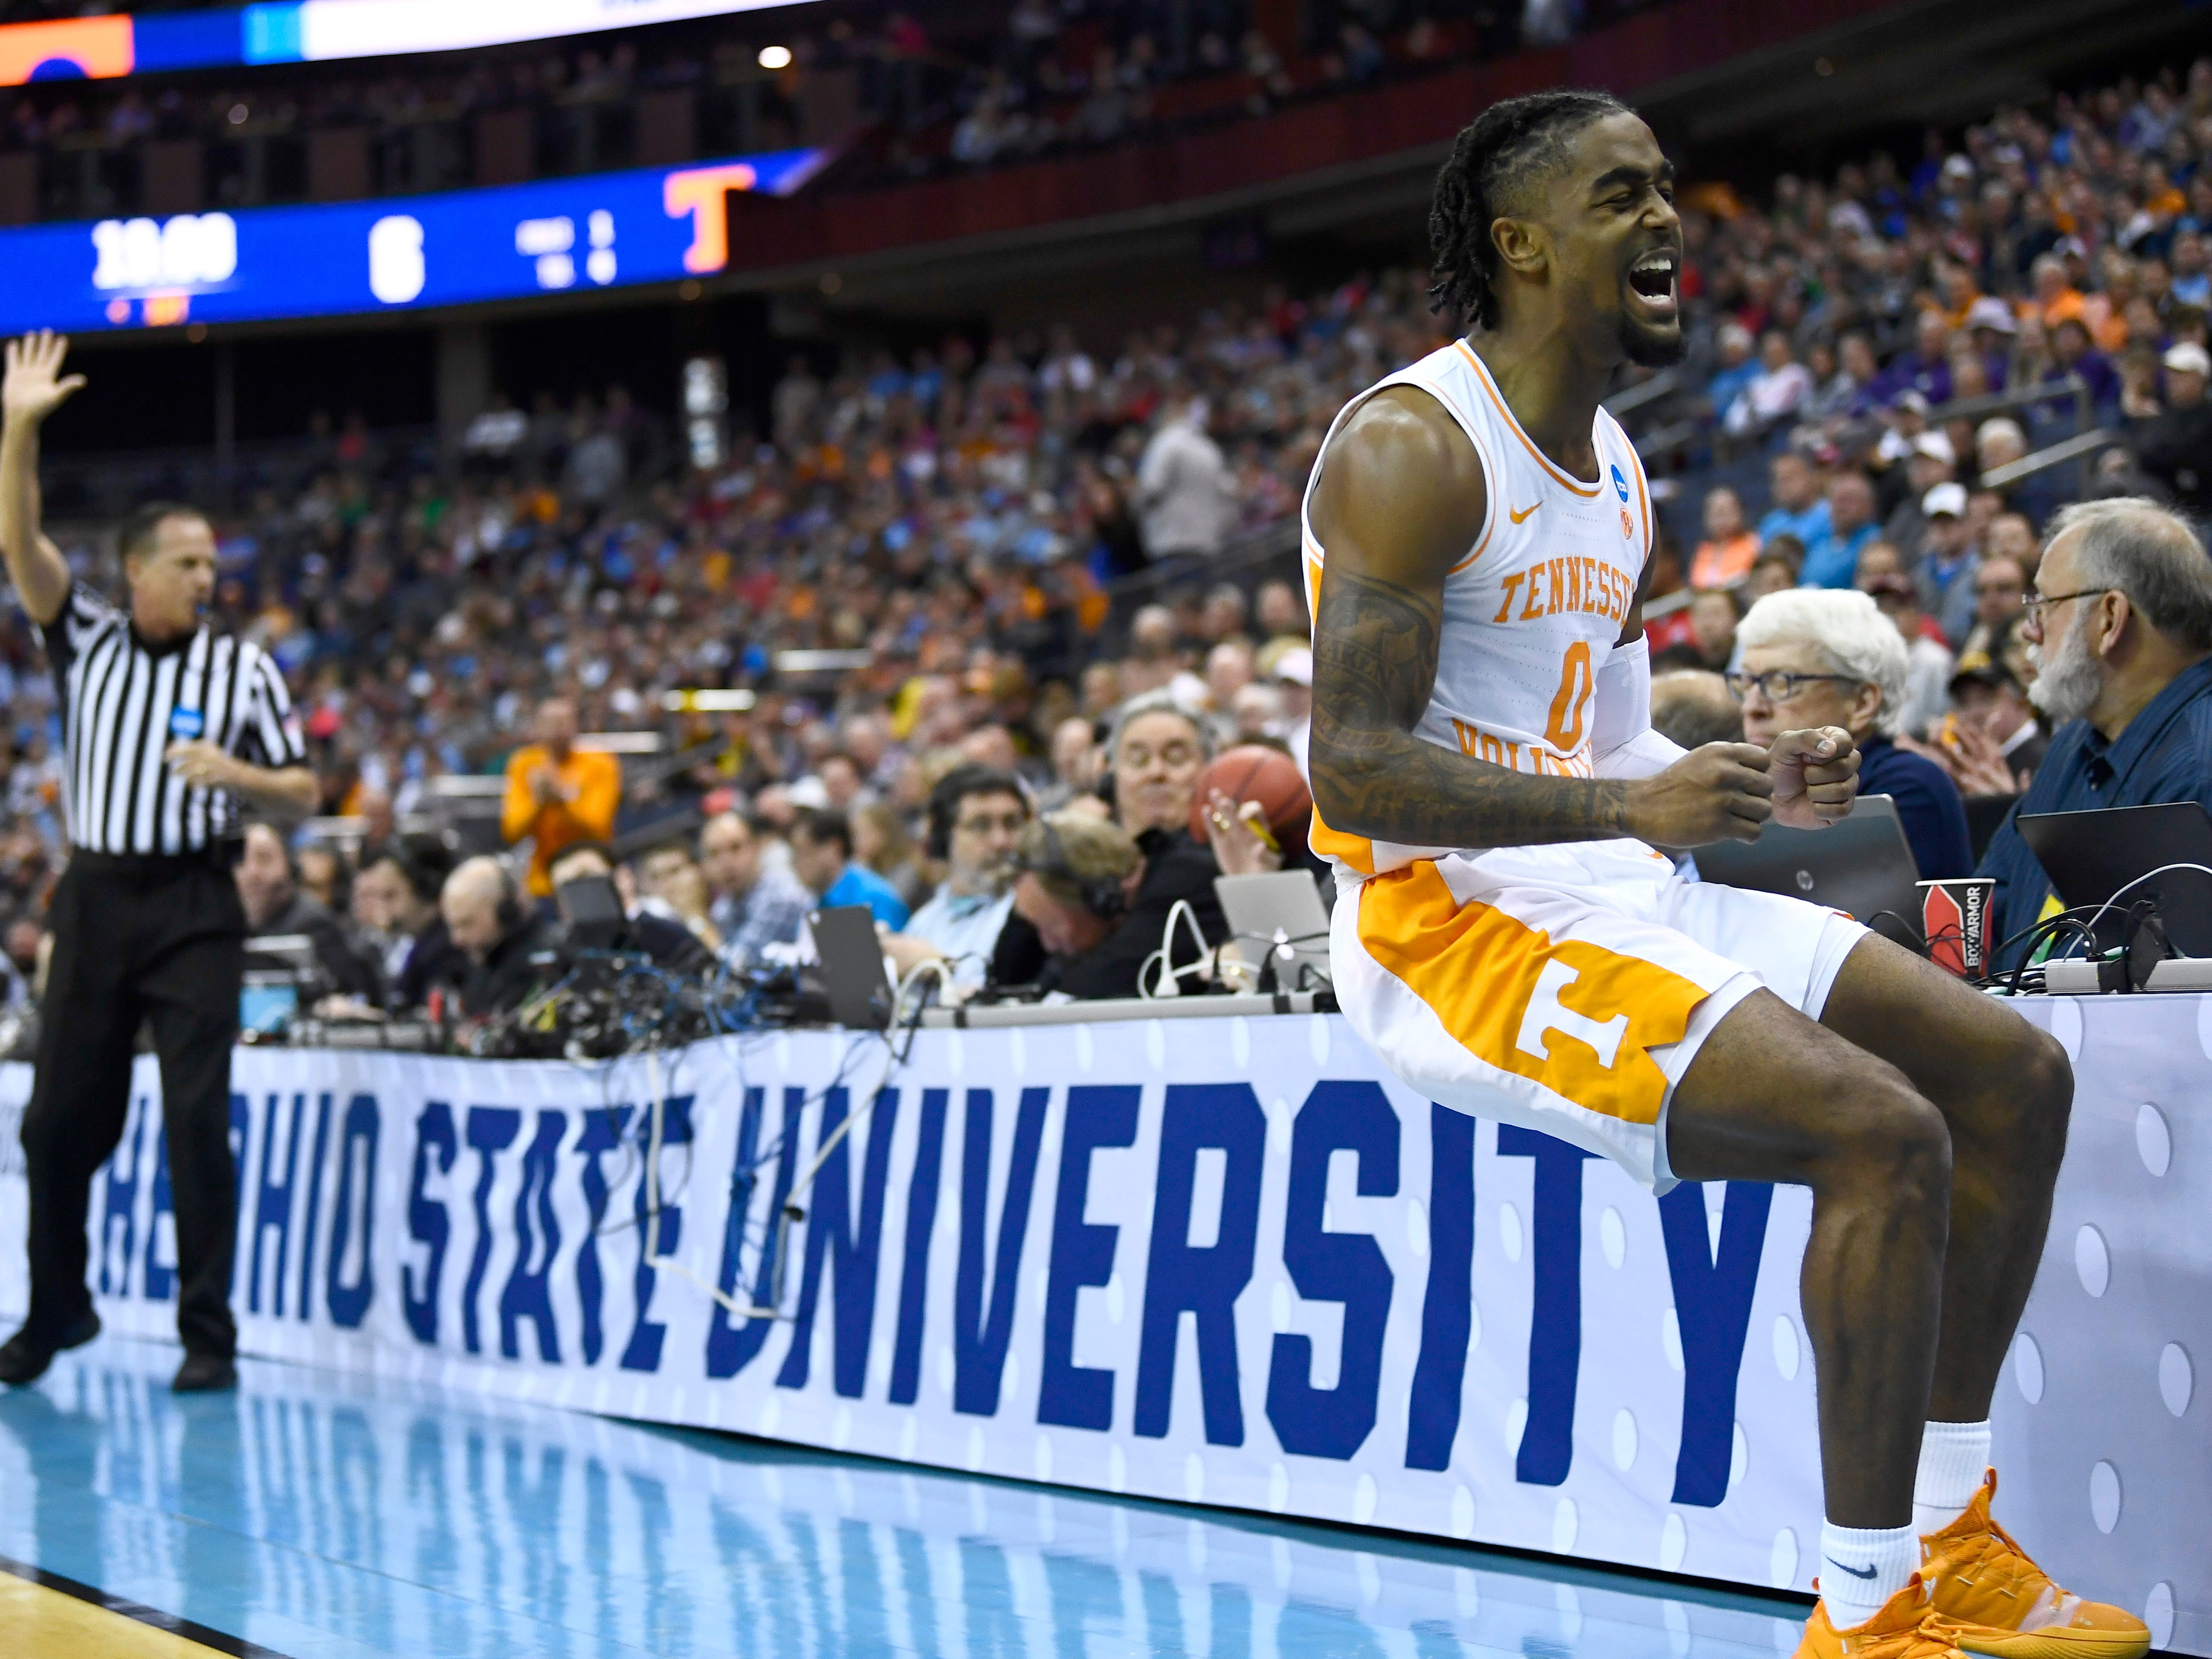 Tennessee guard Jordan Bone (0) reacts to a ball going out of bounds during the first half of the game against the Iowa Hawkeyes in the second round of the NCAA Tournament at Nationwide Arena in Columbus, Ohio, Sunday, March 24, 2019.